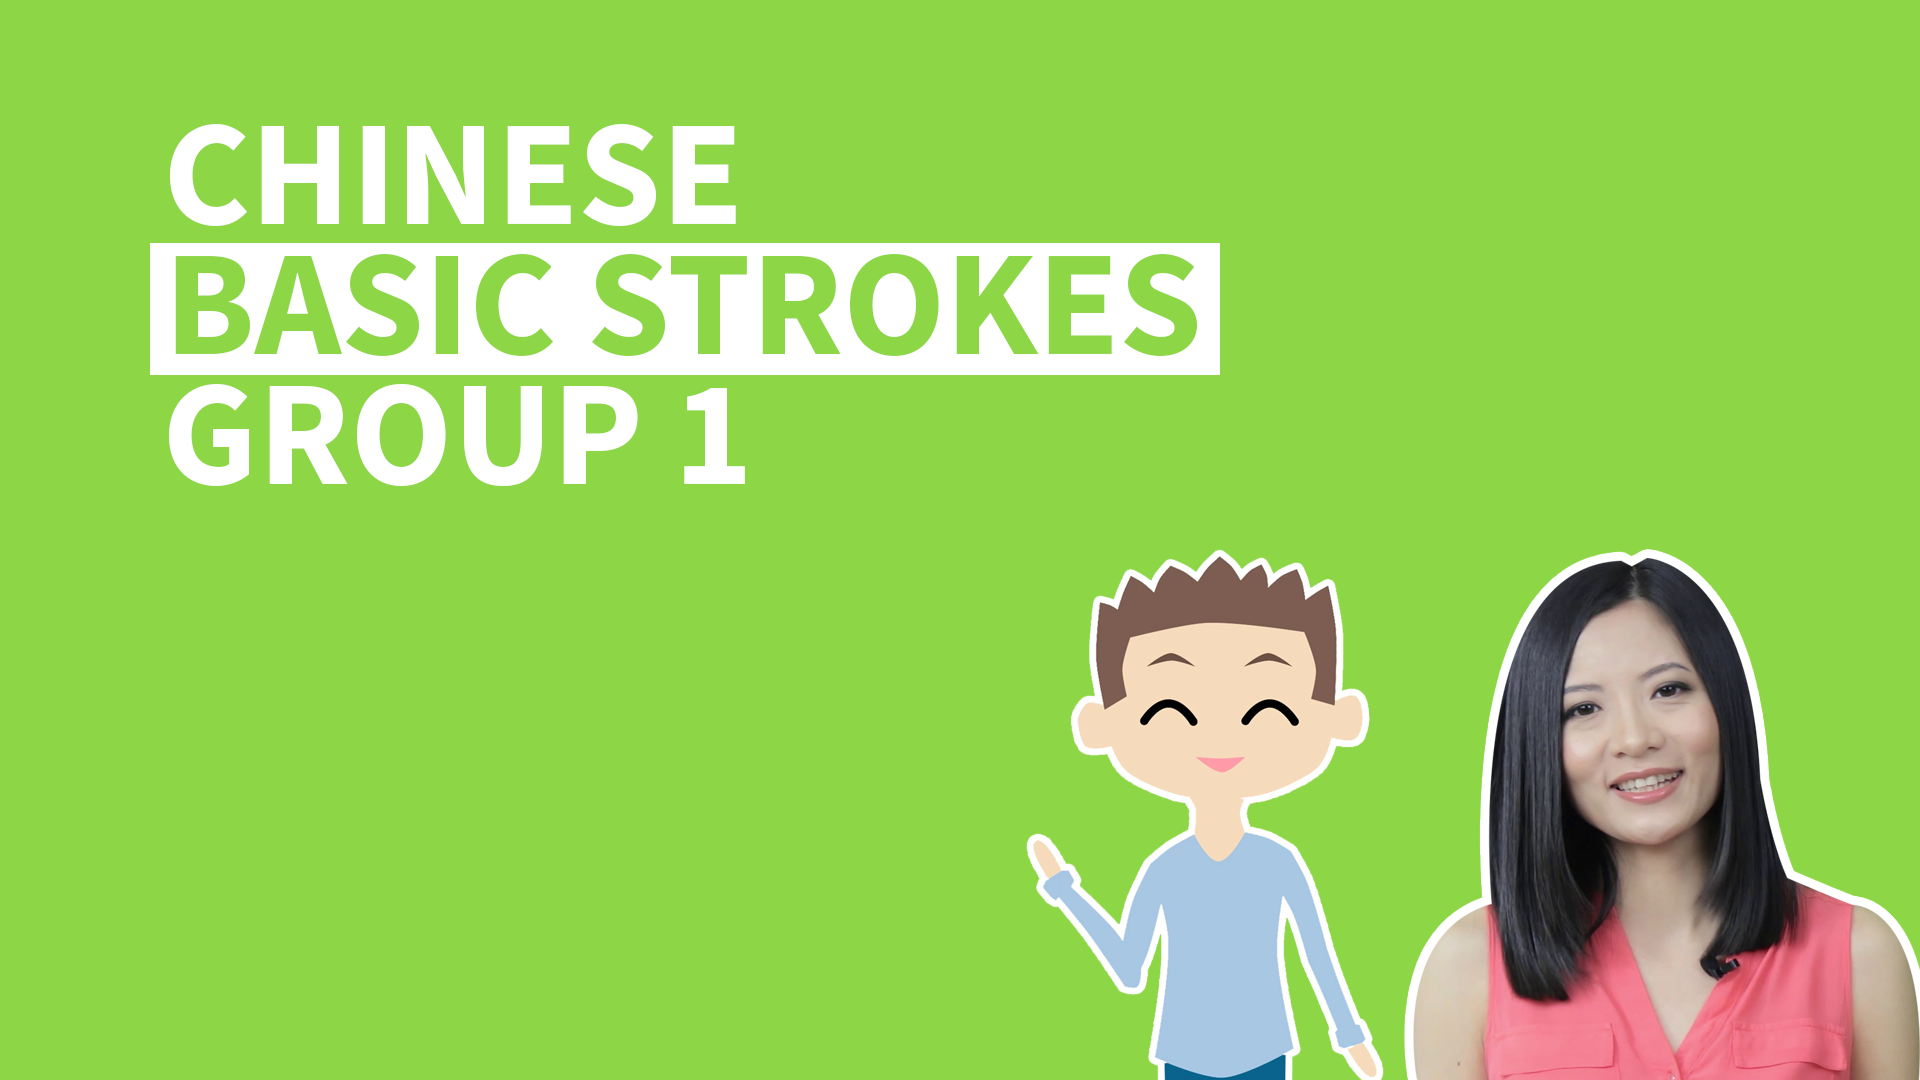 +Video Introduction of basic Chinese strokes: Learn how to write Chinese Strokes and all the Chinese stroke names. Click to watch and start to write today!